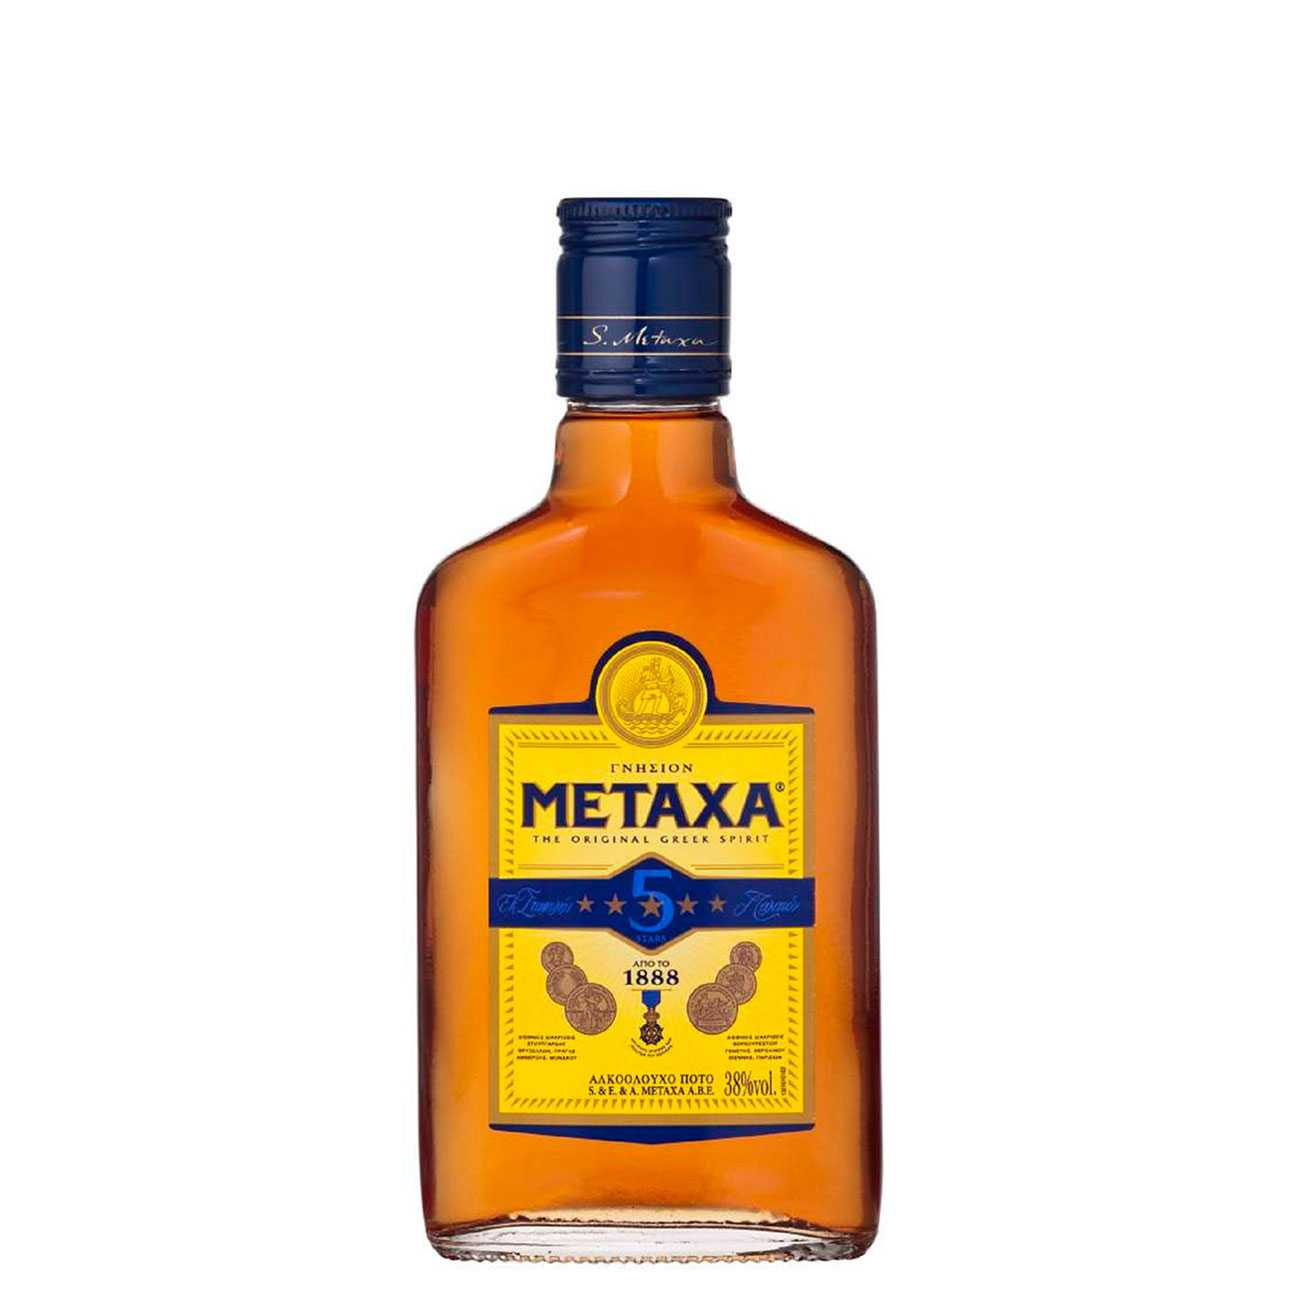 Brandy, 5 STAR 500 ML, Metaxa